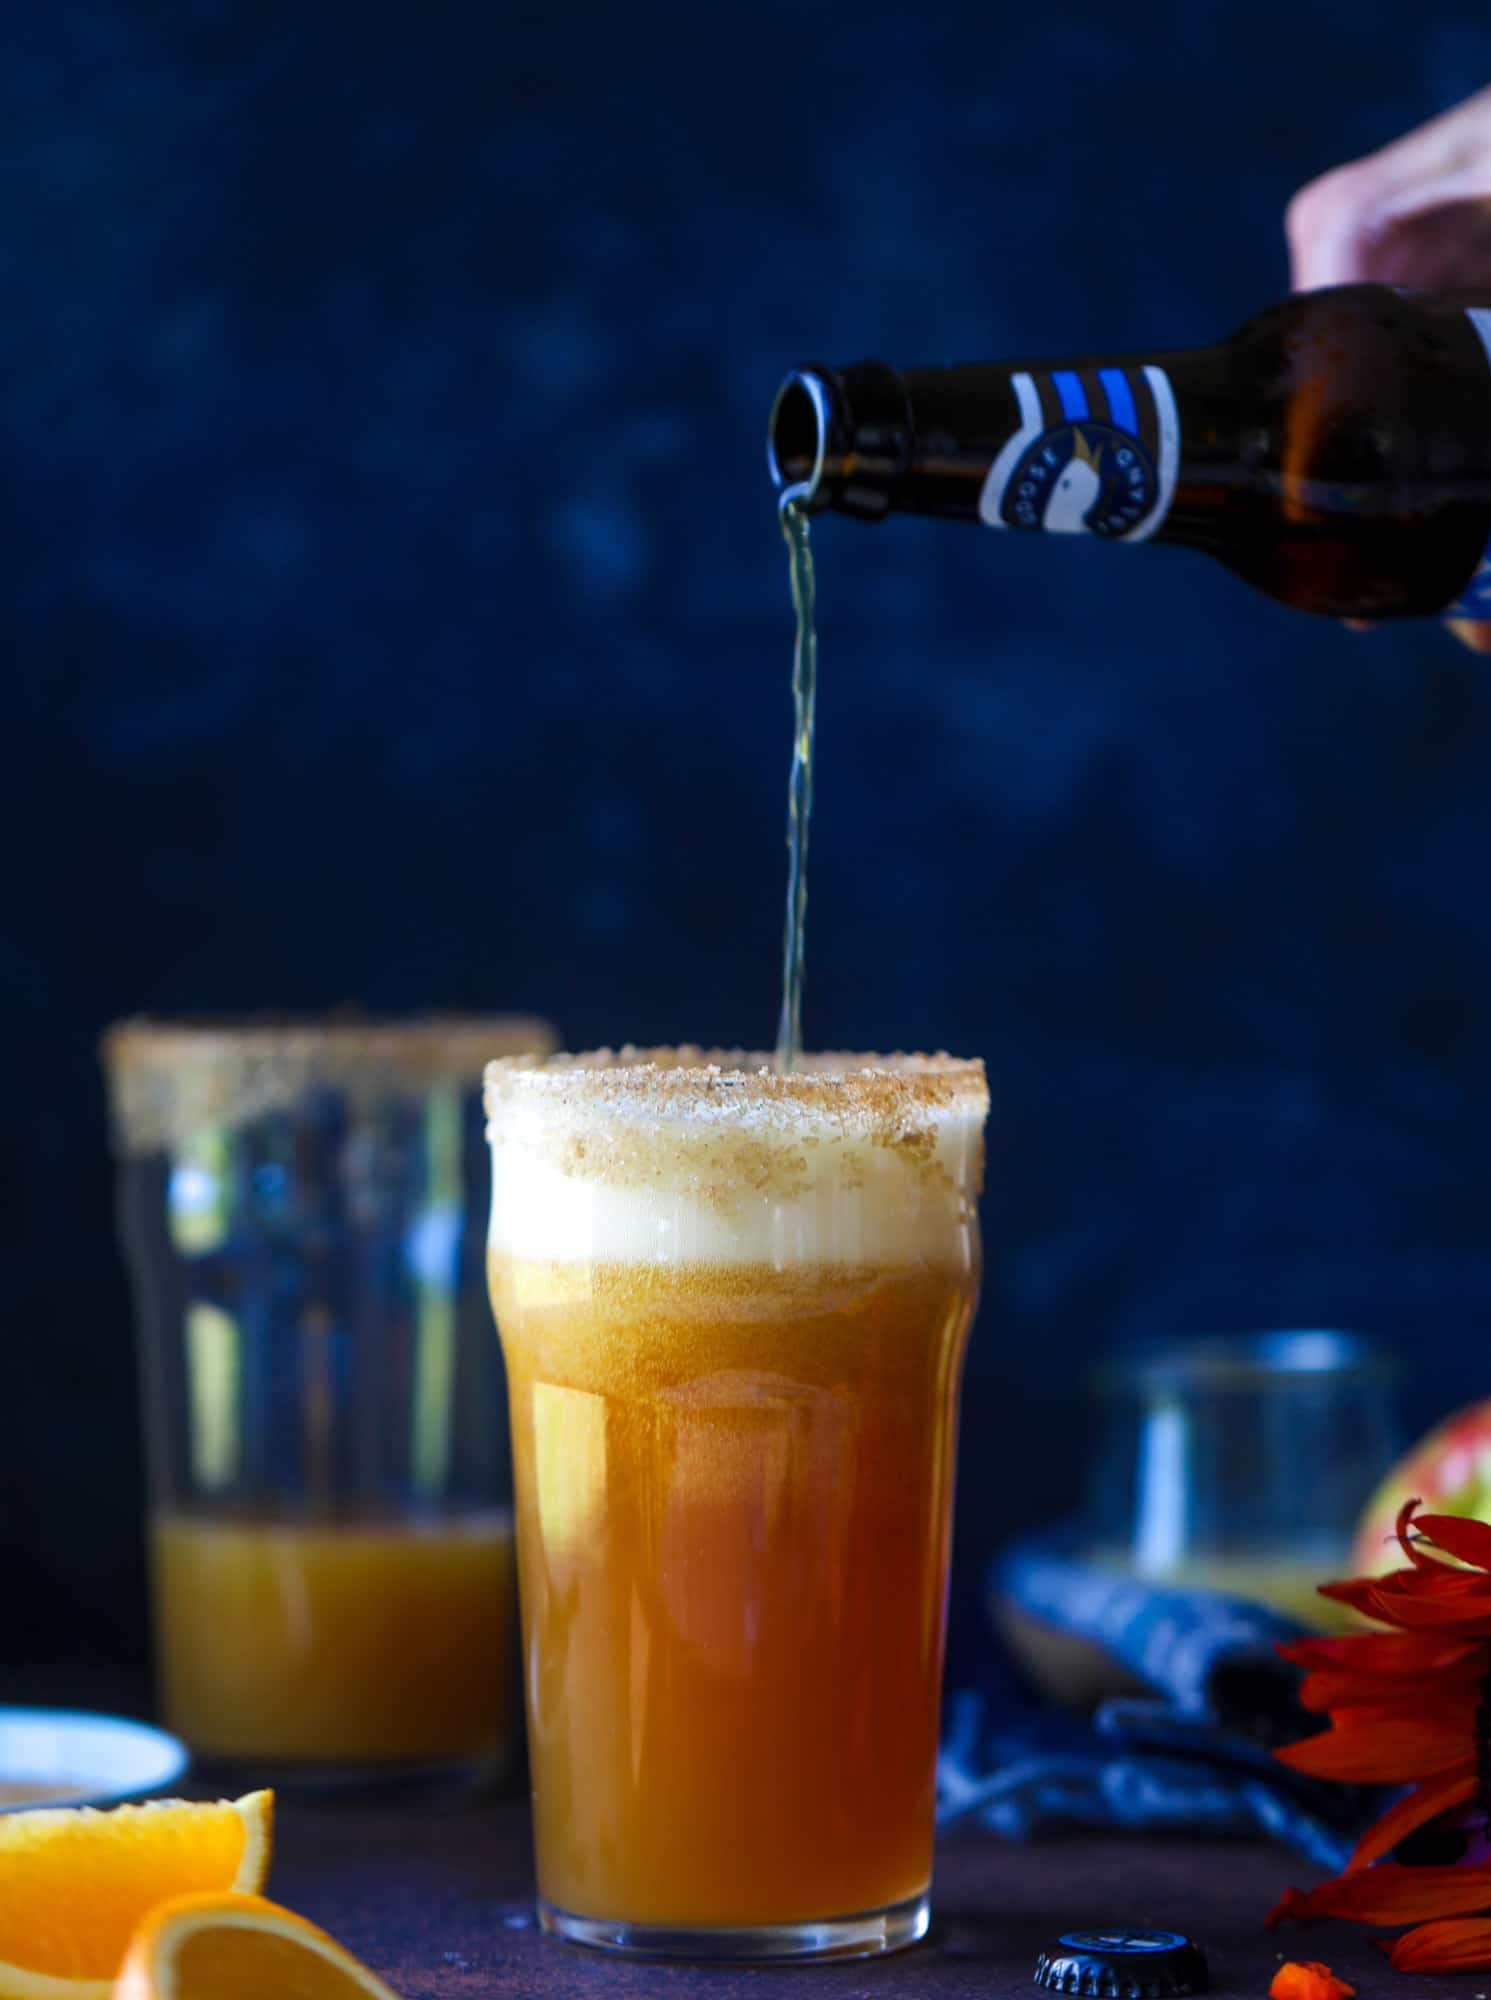 This apple cider shandy recipes is perfect for the fall season! Apple cider, sparkling cider and your favorite beer come together in an icy glass to create the best flavor ever. Finished with a cinnamon sugar rim, there's nothing better! I howsweeteats.com #apple #cider #shandy #cocktails #beer